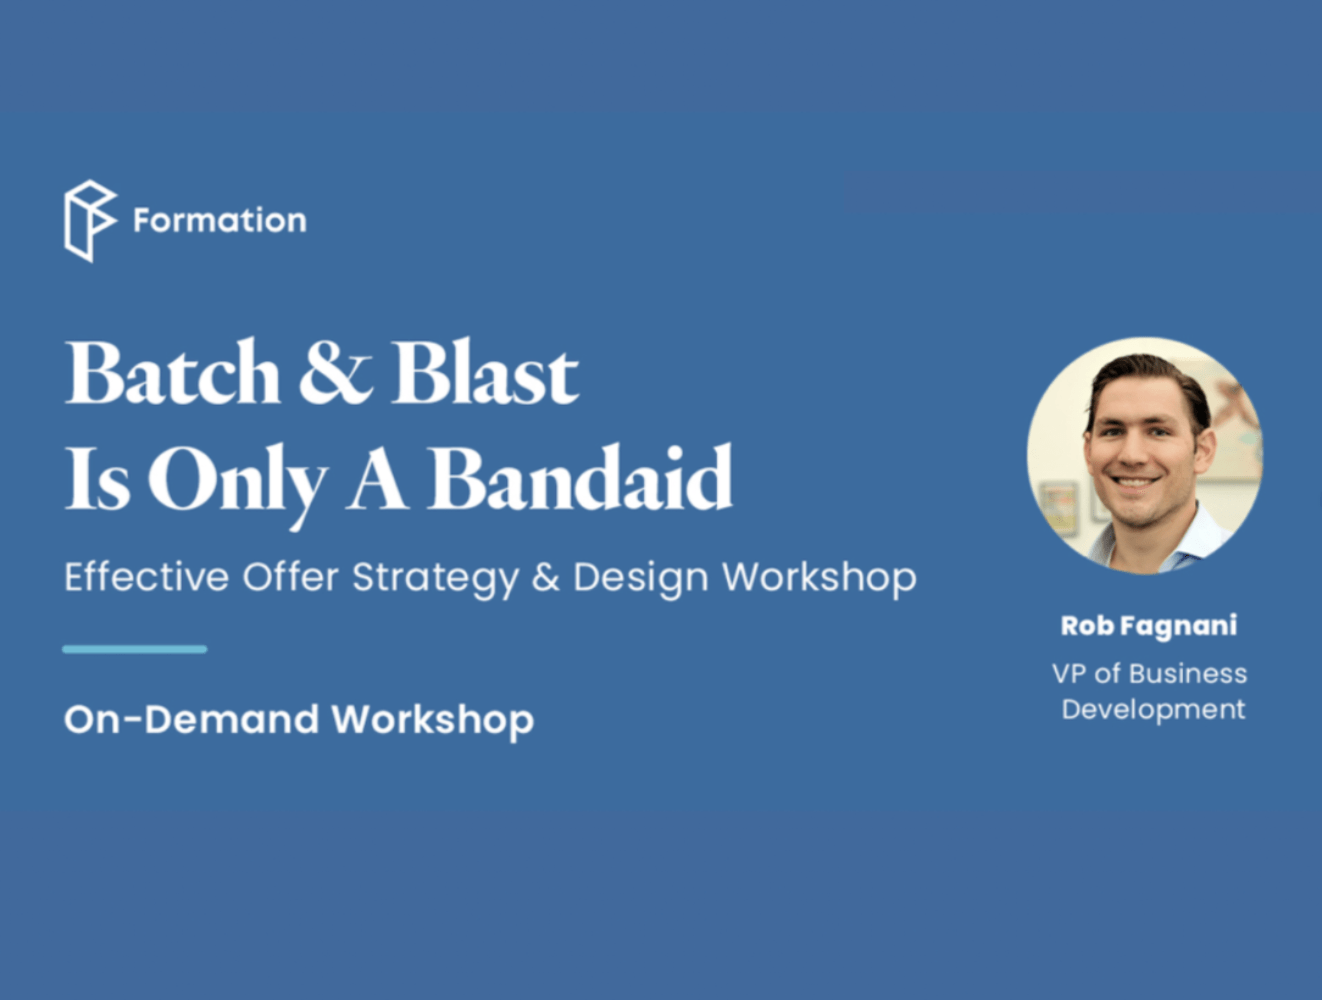 Batch & Blast Is Only A Bandaid